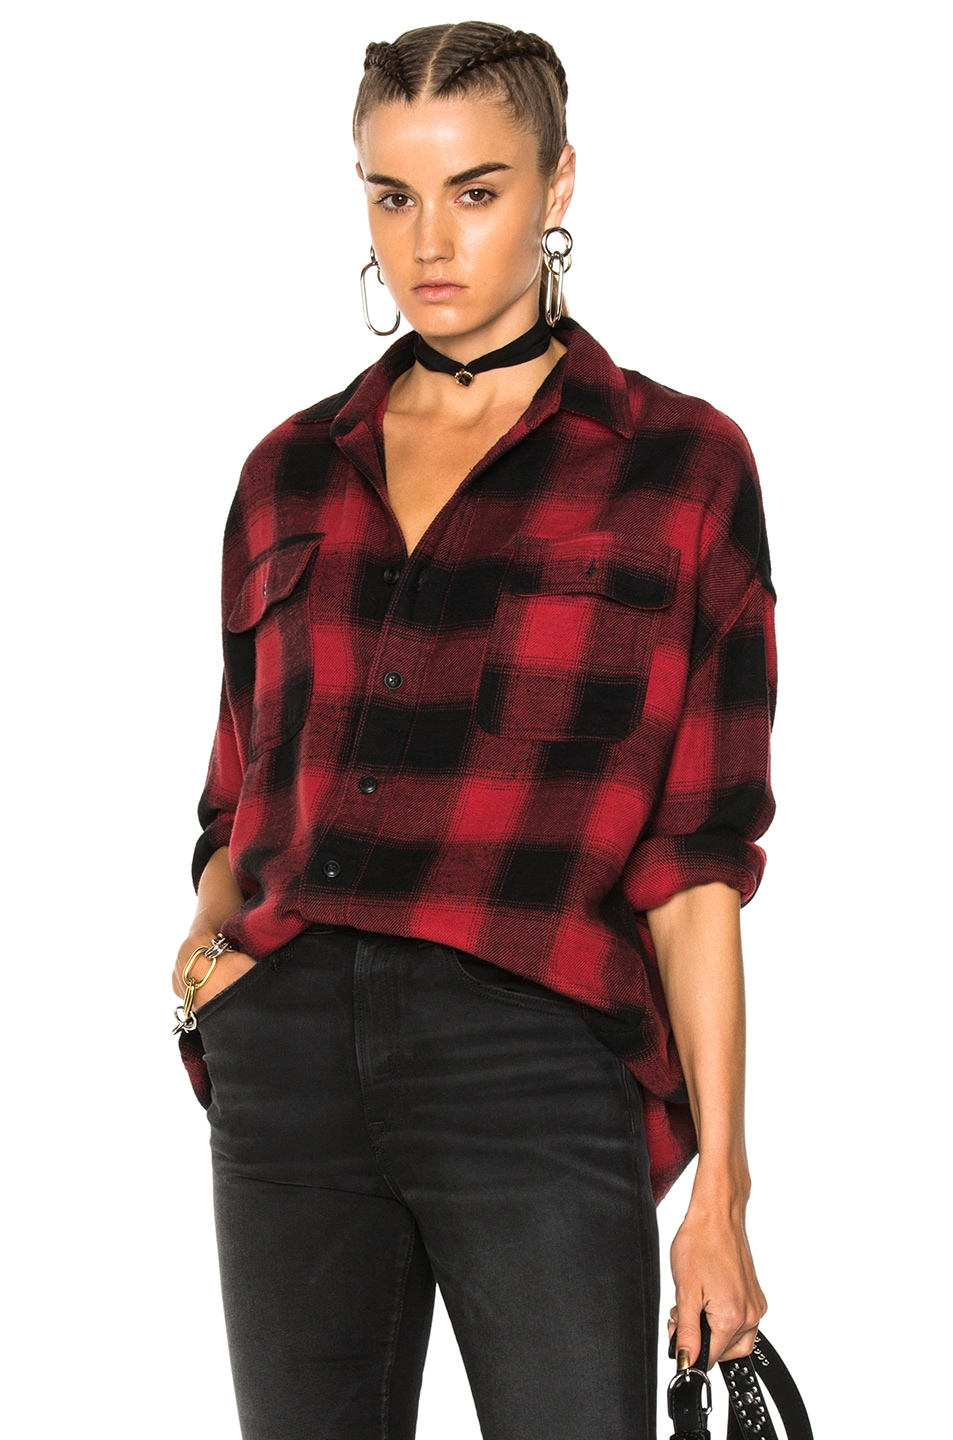 MADEWELL Flannel Ex-Boyfriend Shirt in Bainbridge Plaid ($80) liked on Polyvore featuring tops, shirts, flannels, long sleeves, red sangria, long plaid boyfriend shirt, oversized button down shirt, button-down shirts, oversized plaid shirt and button up shirts.